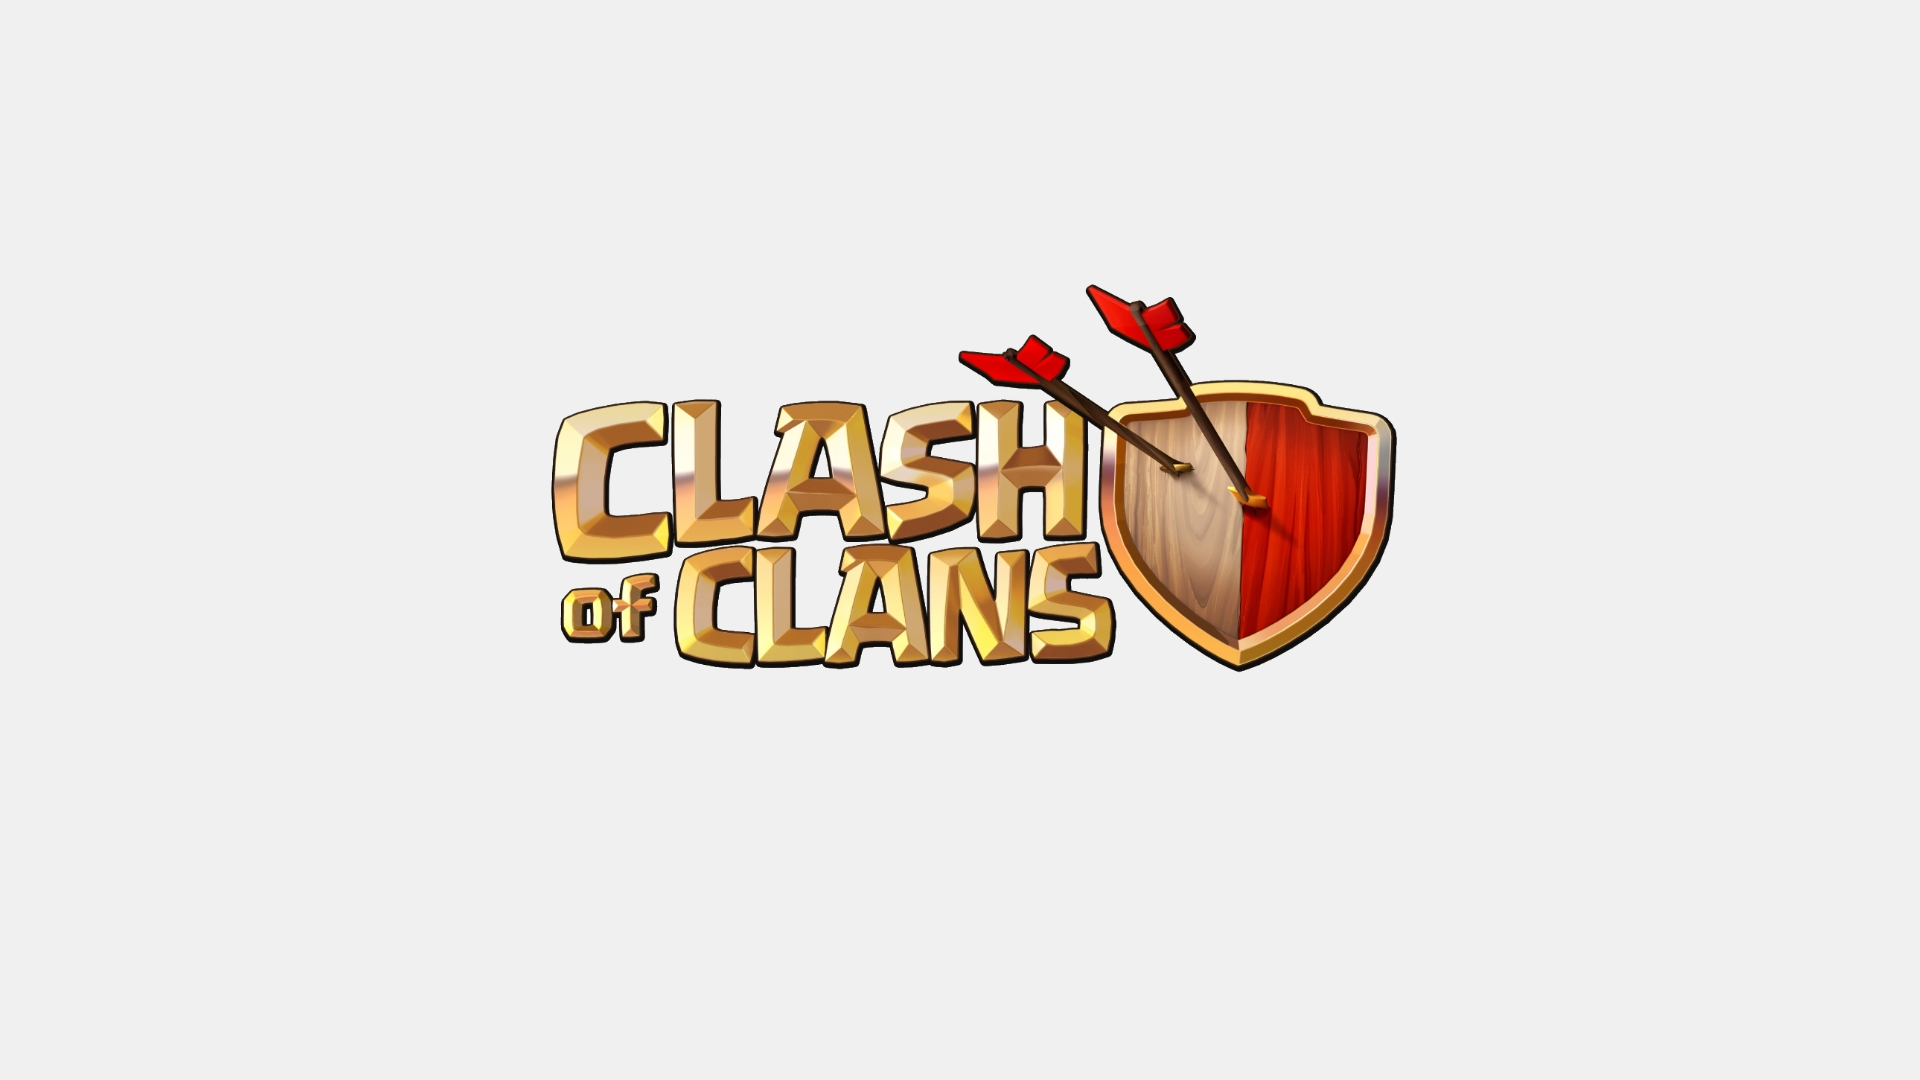 of clans wallpaper - photo #16